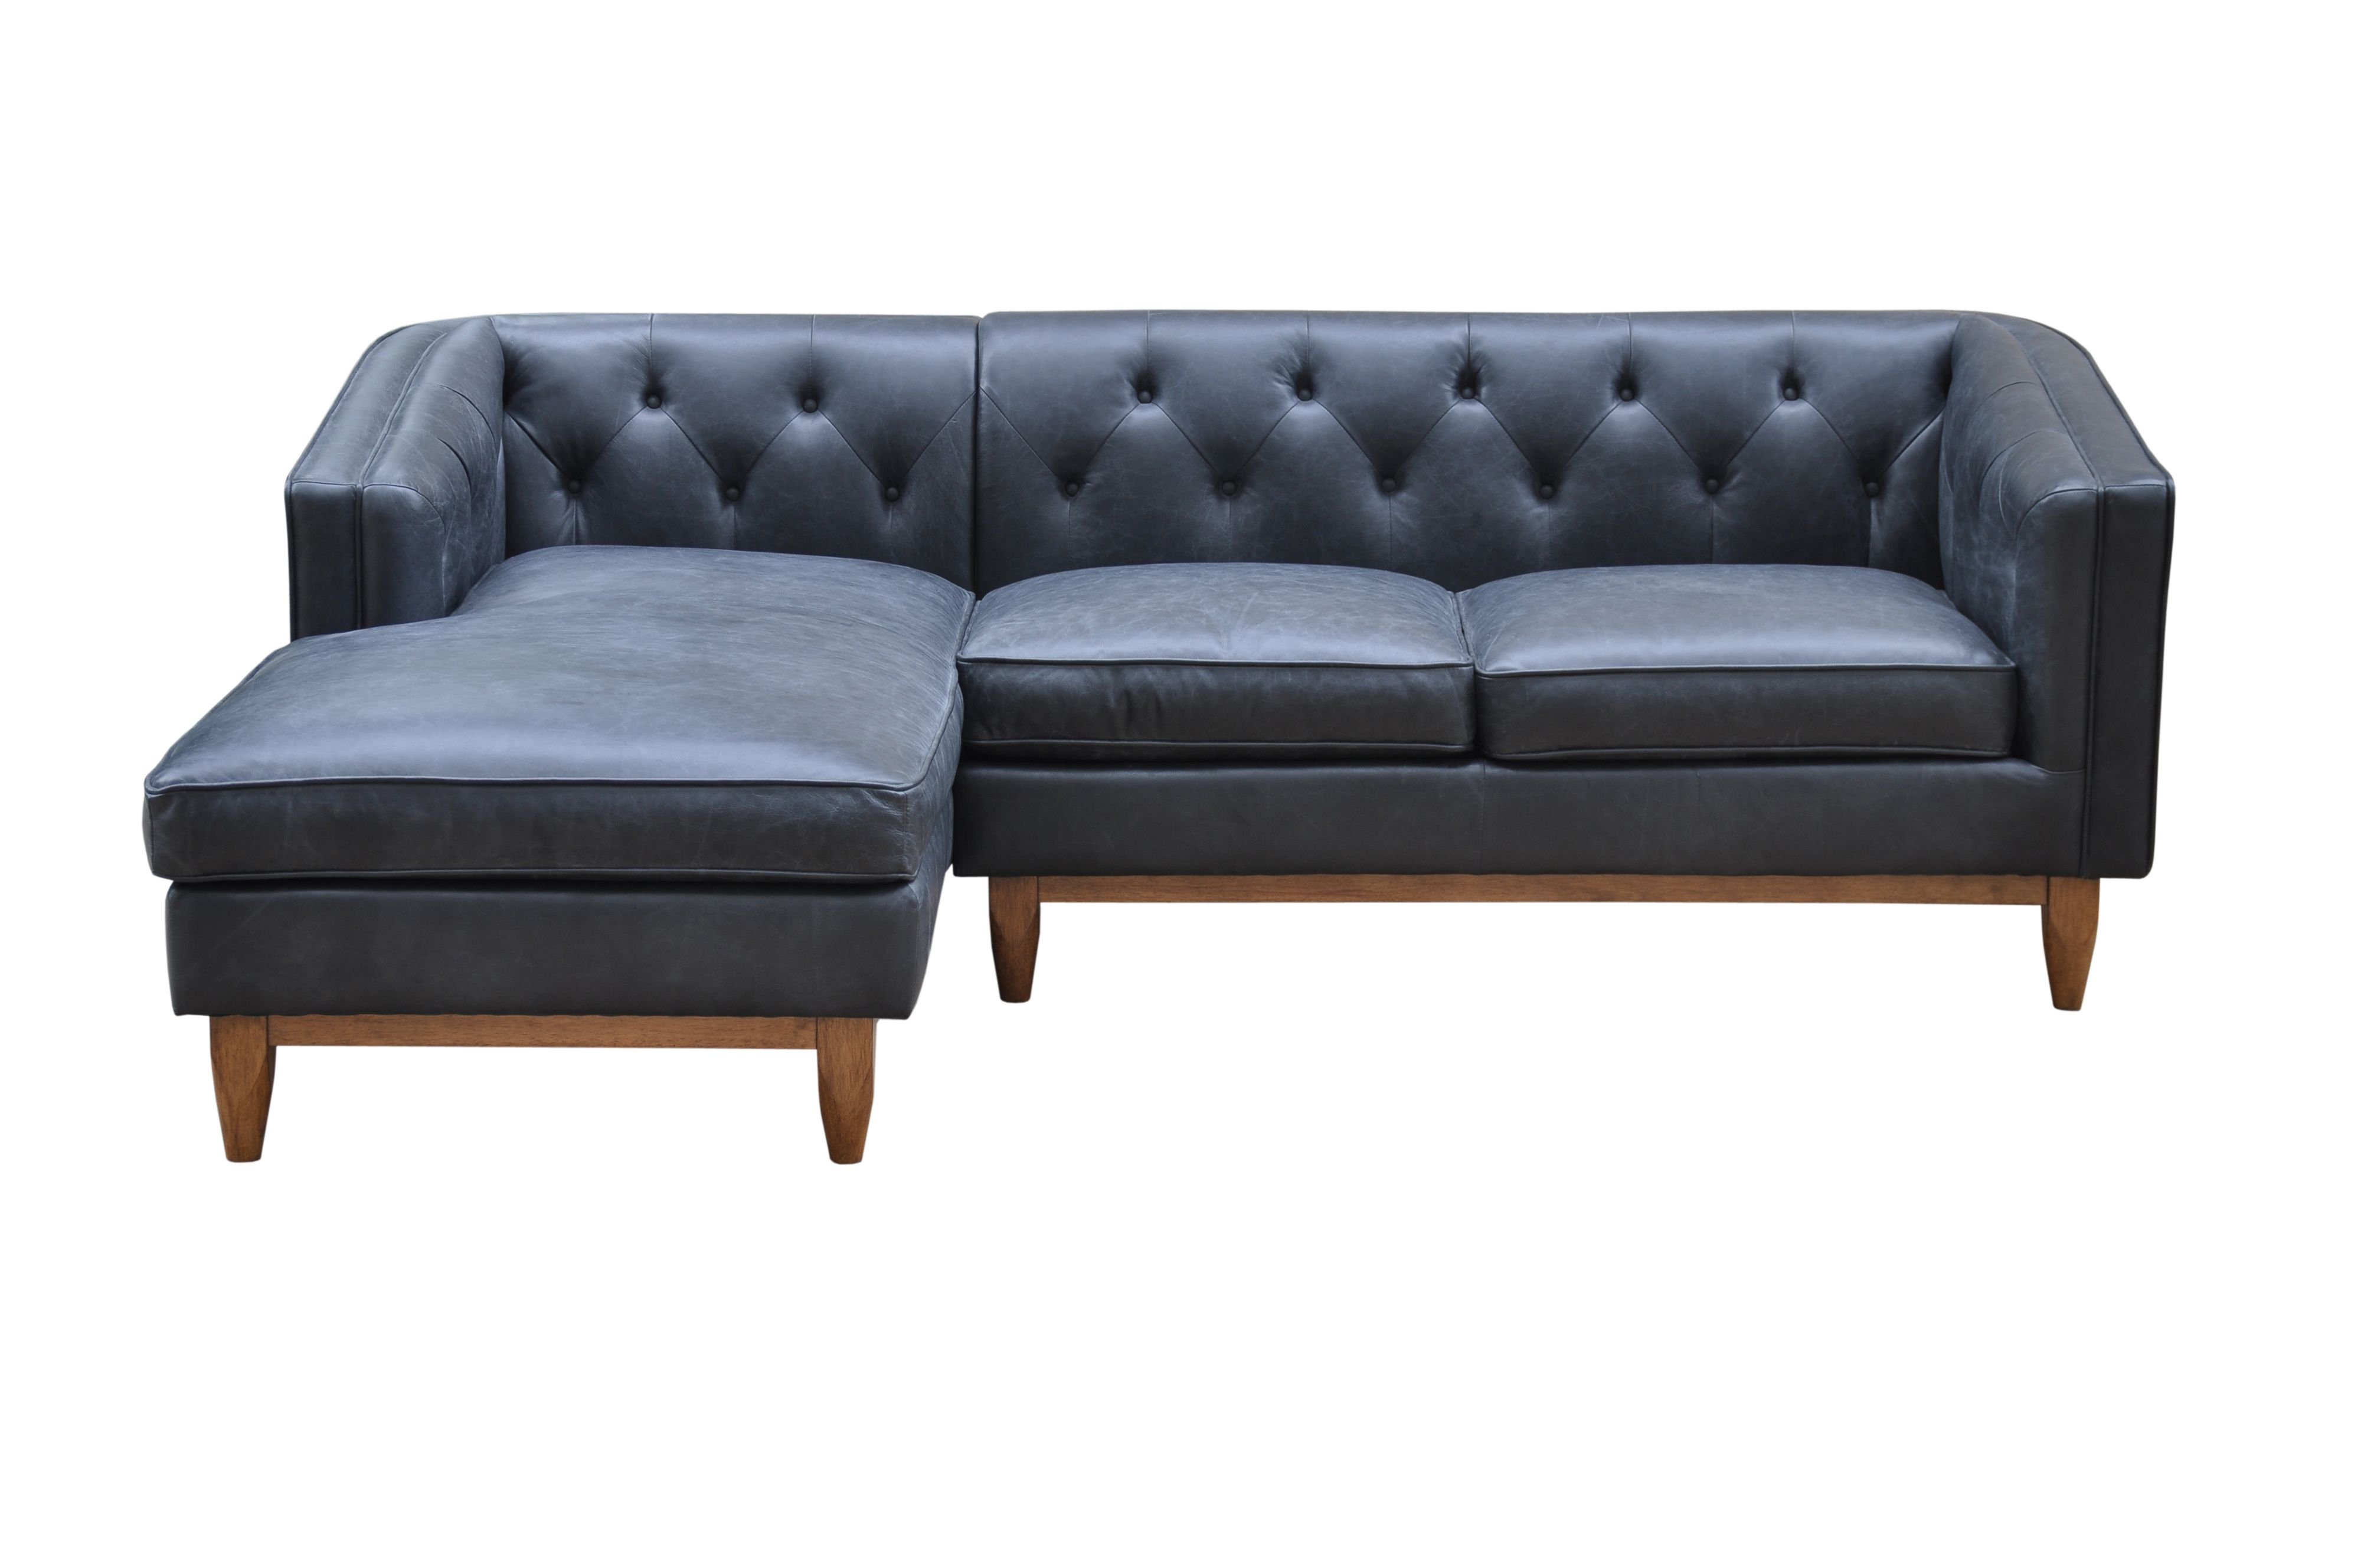 Black Friday Leather Sofa Deals Uk Nrtradiantcom